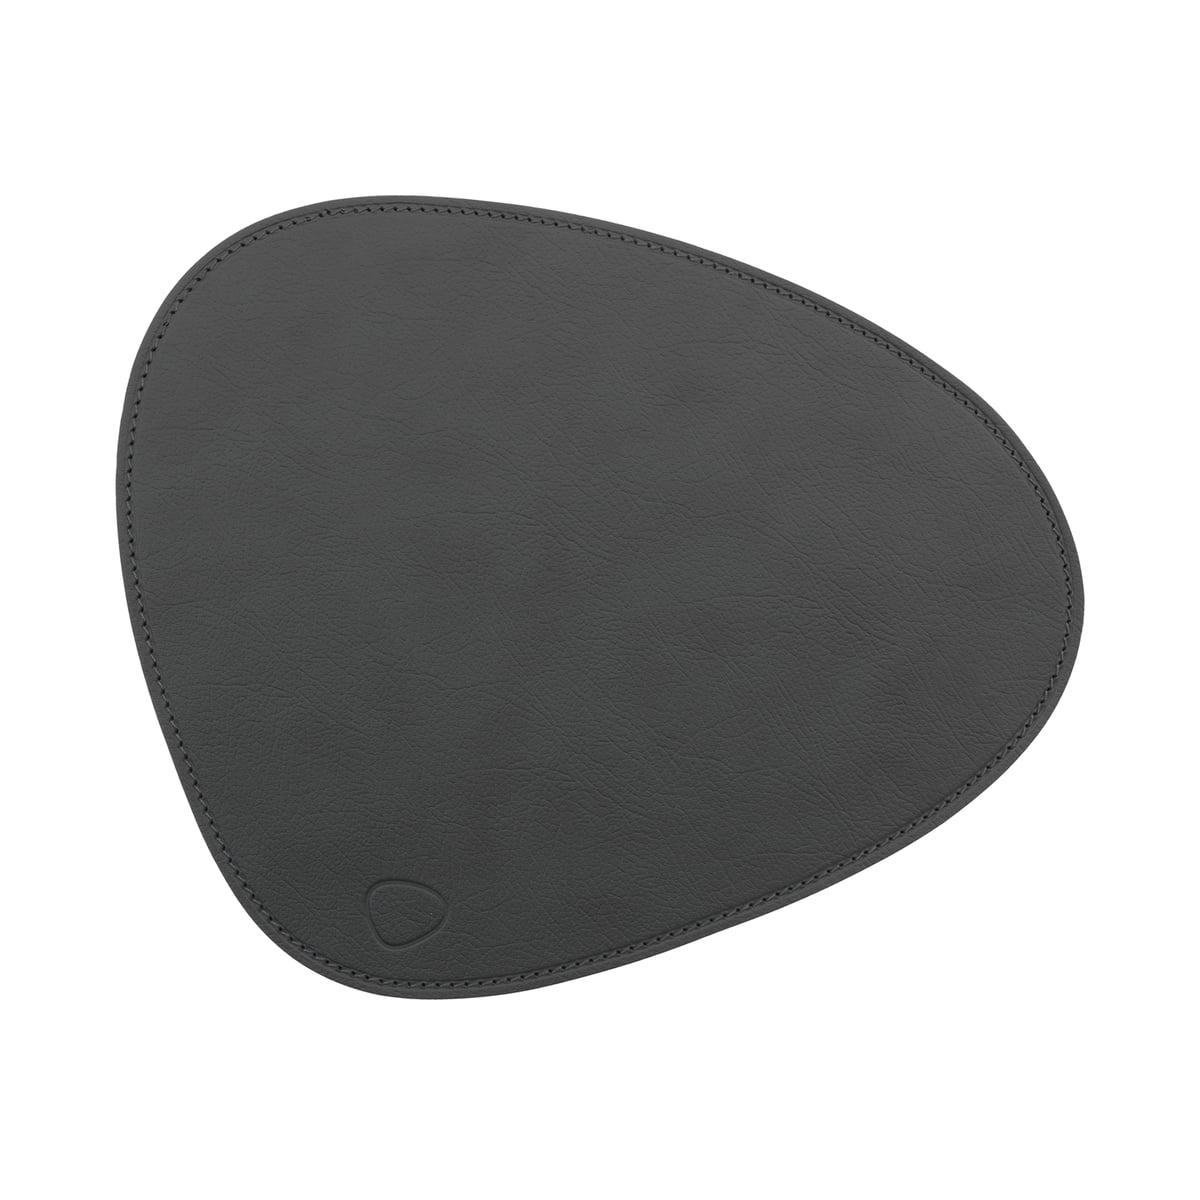 LindDNA - Mouse Mat Curve, Cloud anthrazit / Naht anthrazit